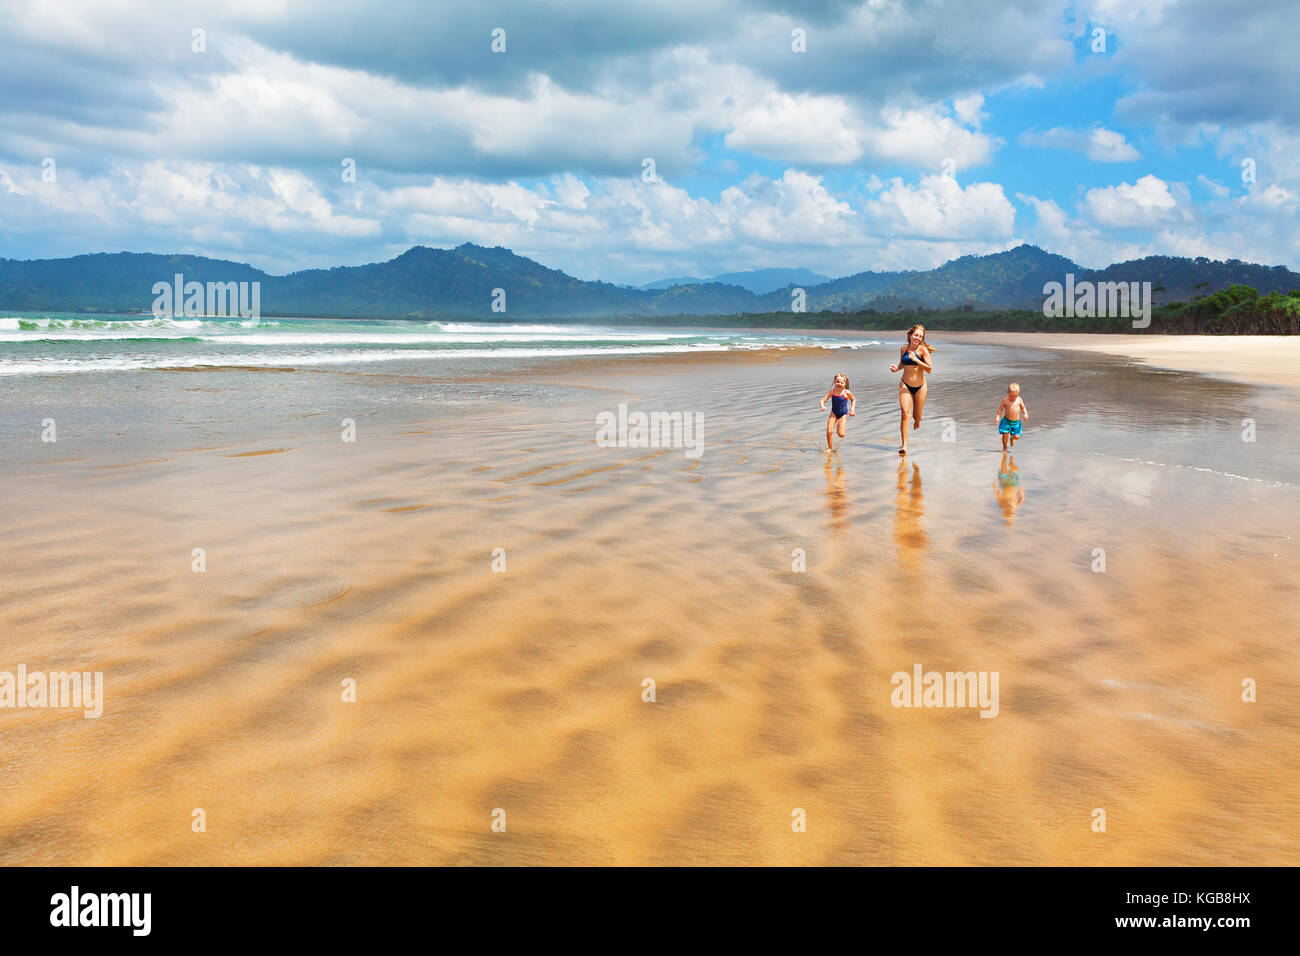 Happy family - mother, children have fun, run by water pool along sea surf on sand beach. Red island beach, pantai - Stock Image